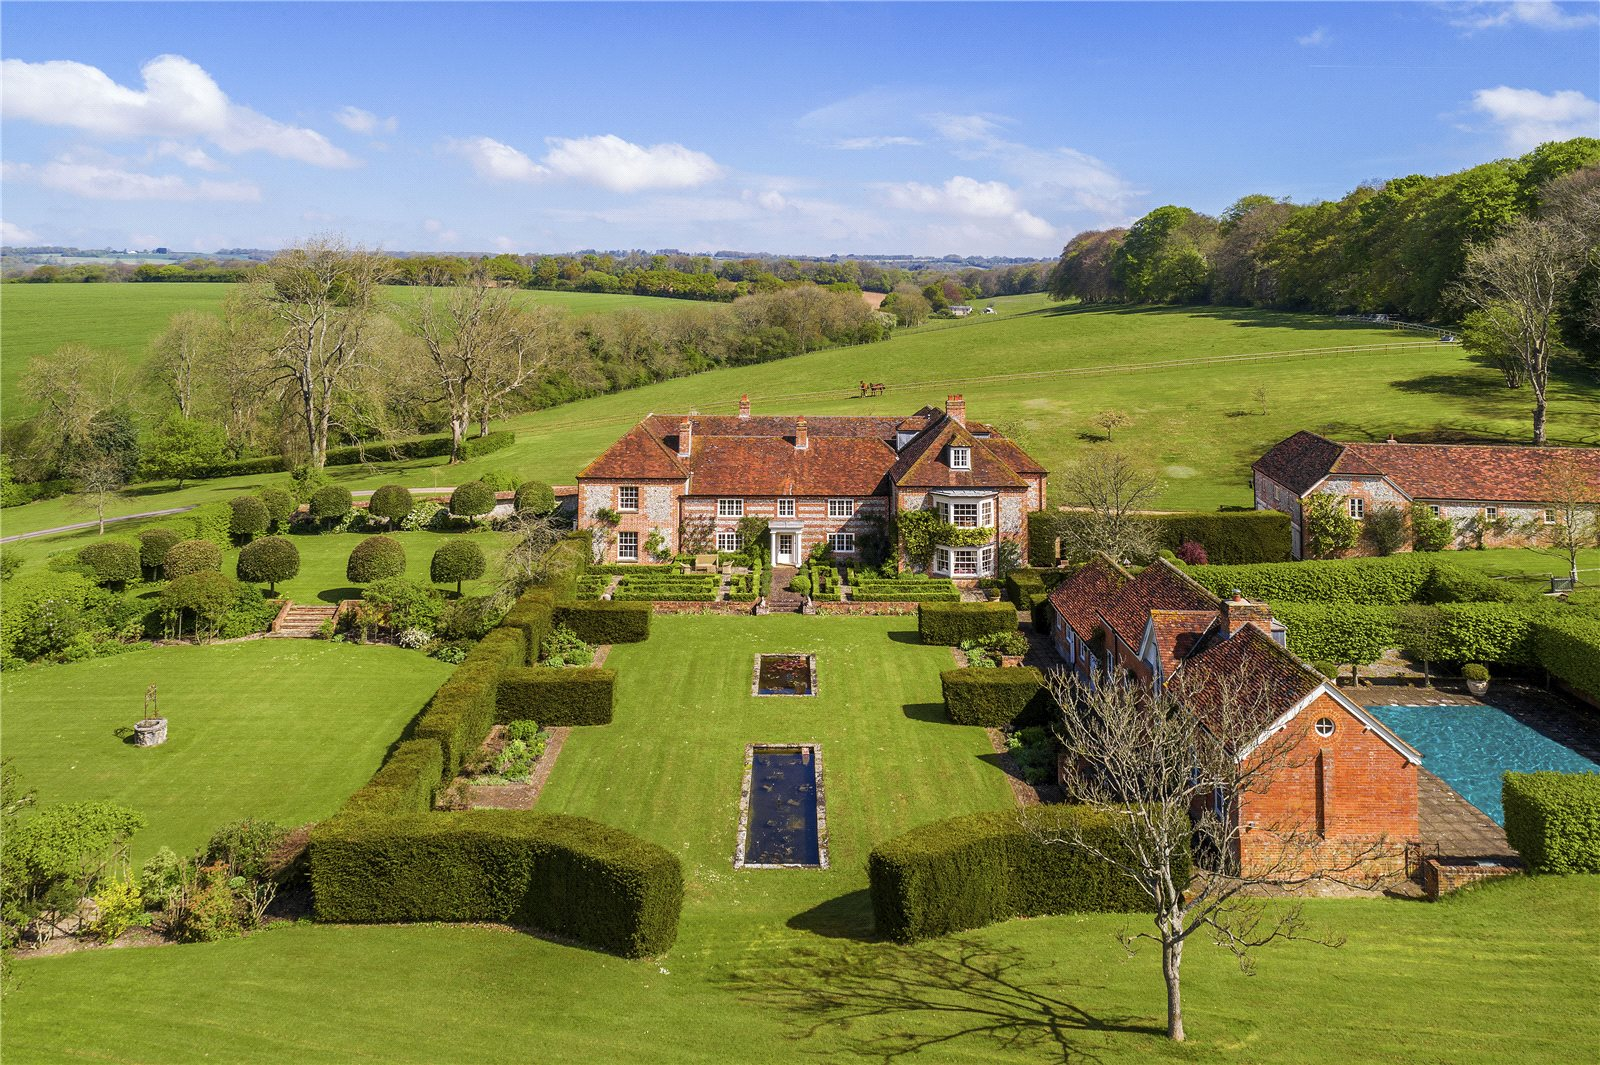 Apartments / Residences for Sale at Biddesden, Andover, Hampshire, SP11 Andover, England